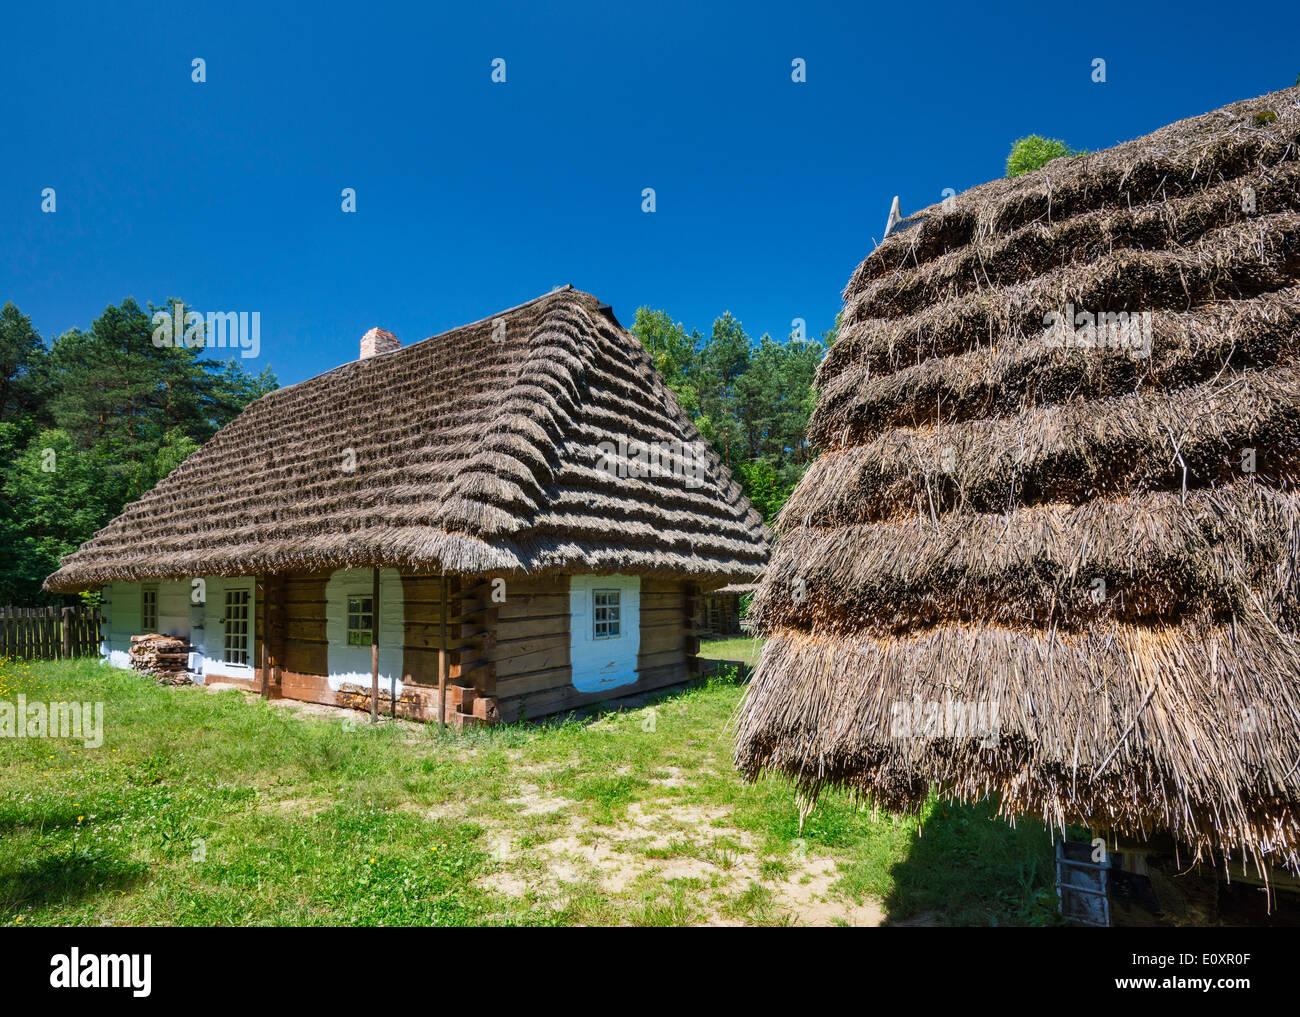 19th century cottages at Ethnographic Park at open-air Folk Culture Museum in Kolbuszowa, Malopolska, Poland - Stock Image